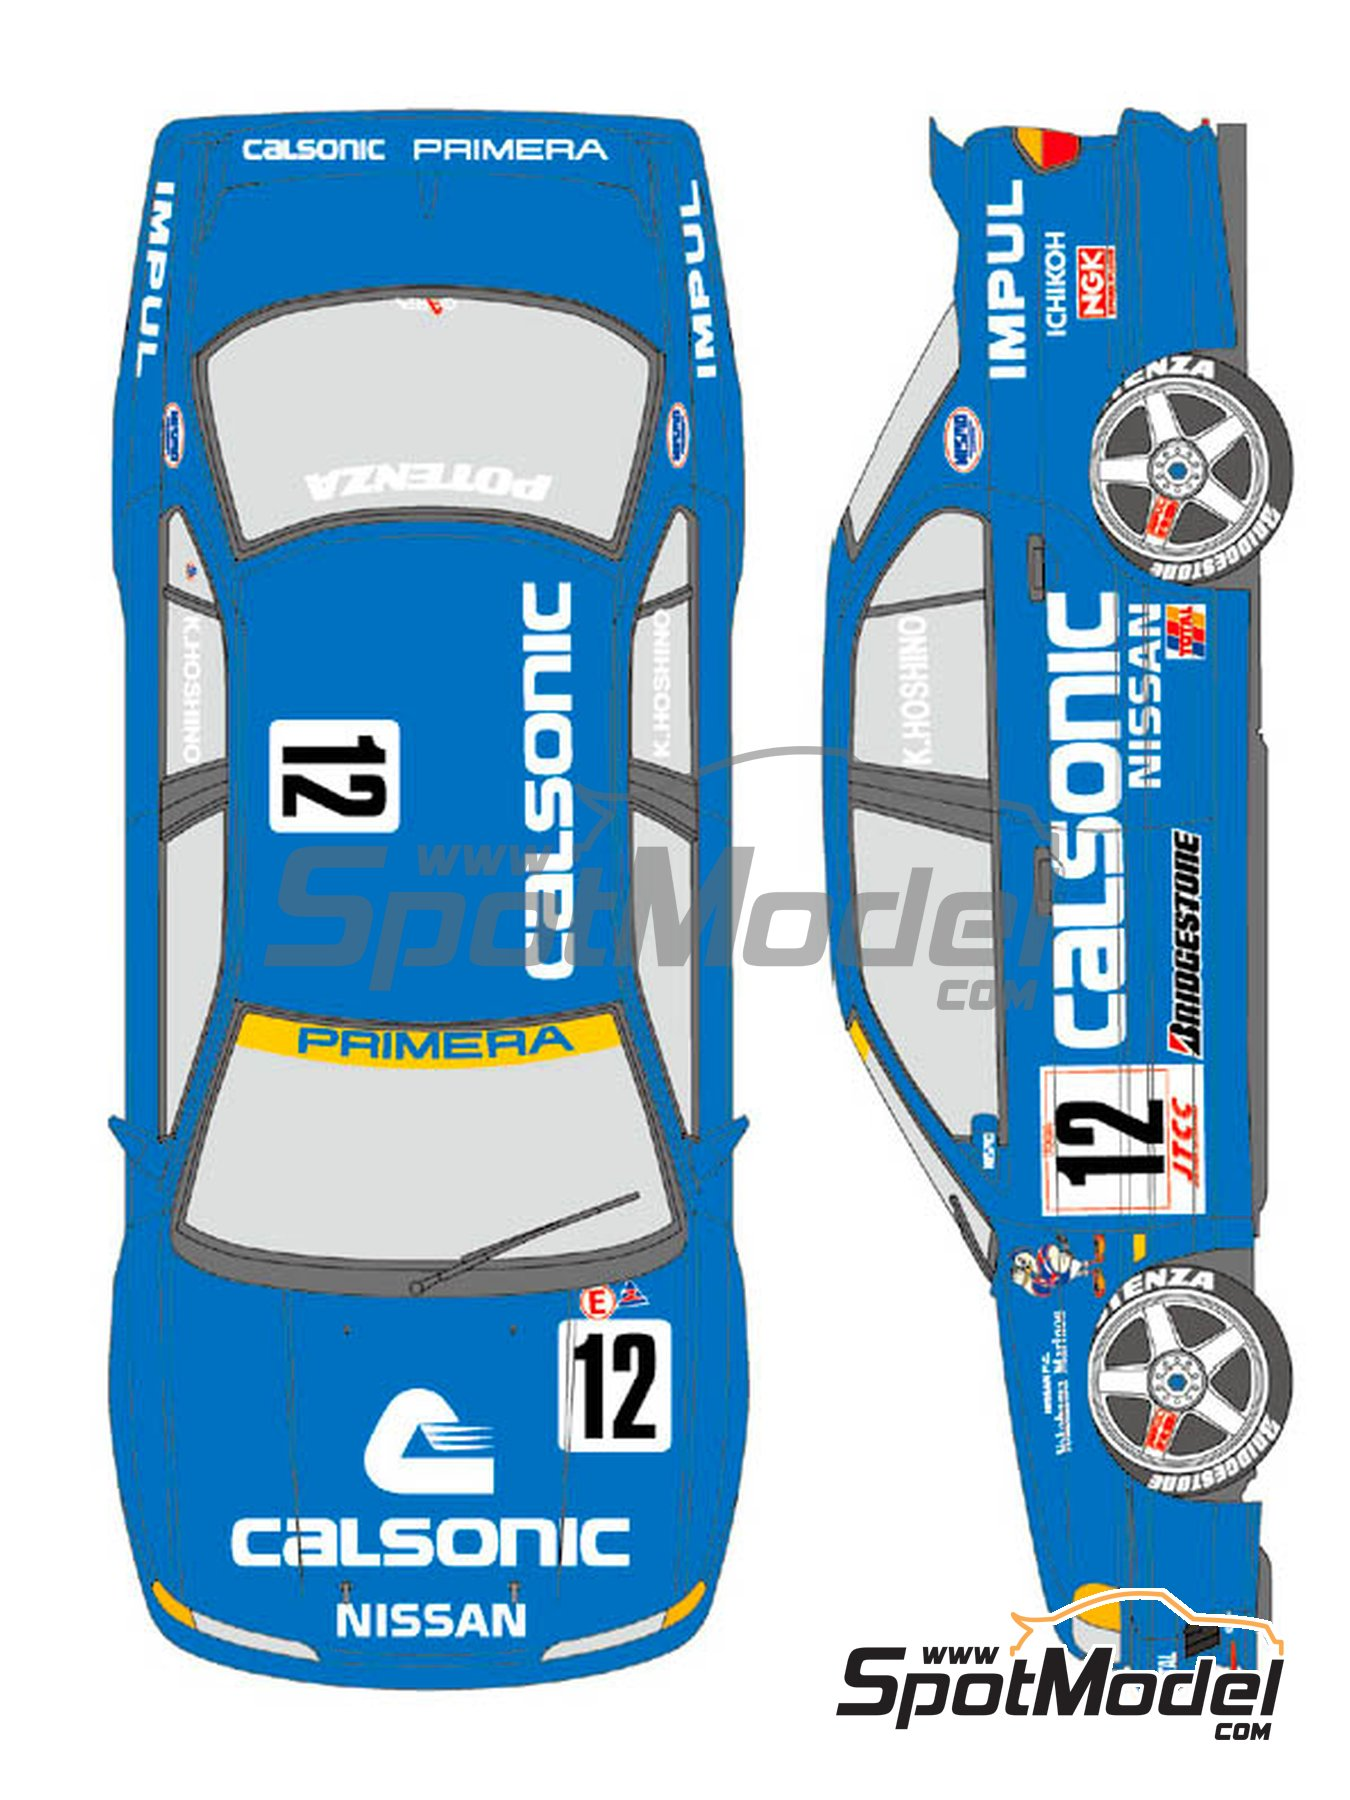 Nissan Primera Calsonic Team Impul - Japan Touring Car Championship (JTCC) 1994 | Marking / livery in 1/24 scale manufactured by Shunko Models (ref. SHK-D357) image